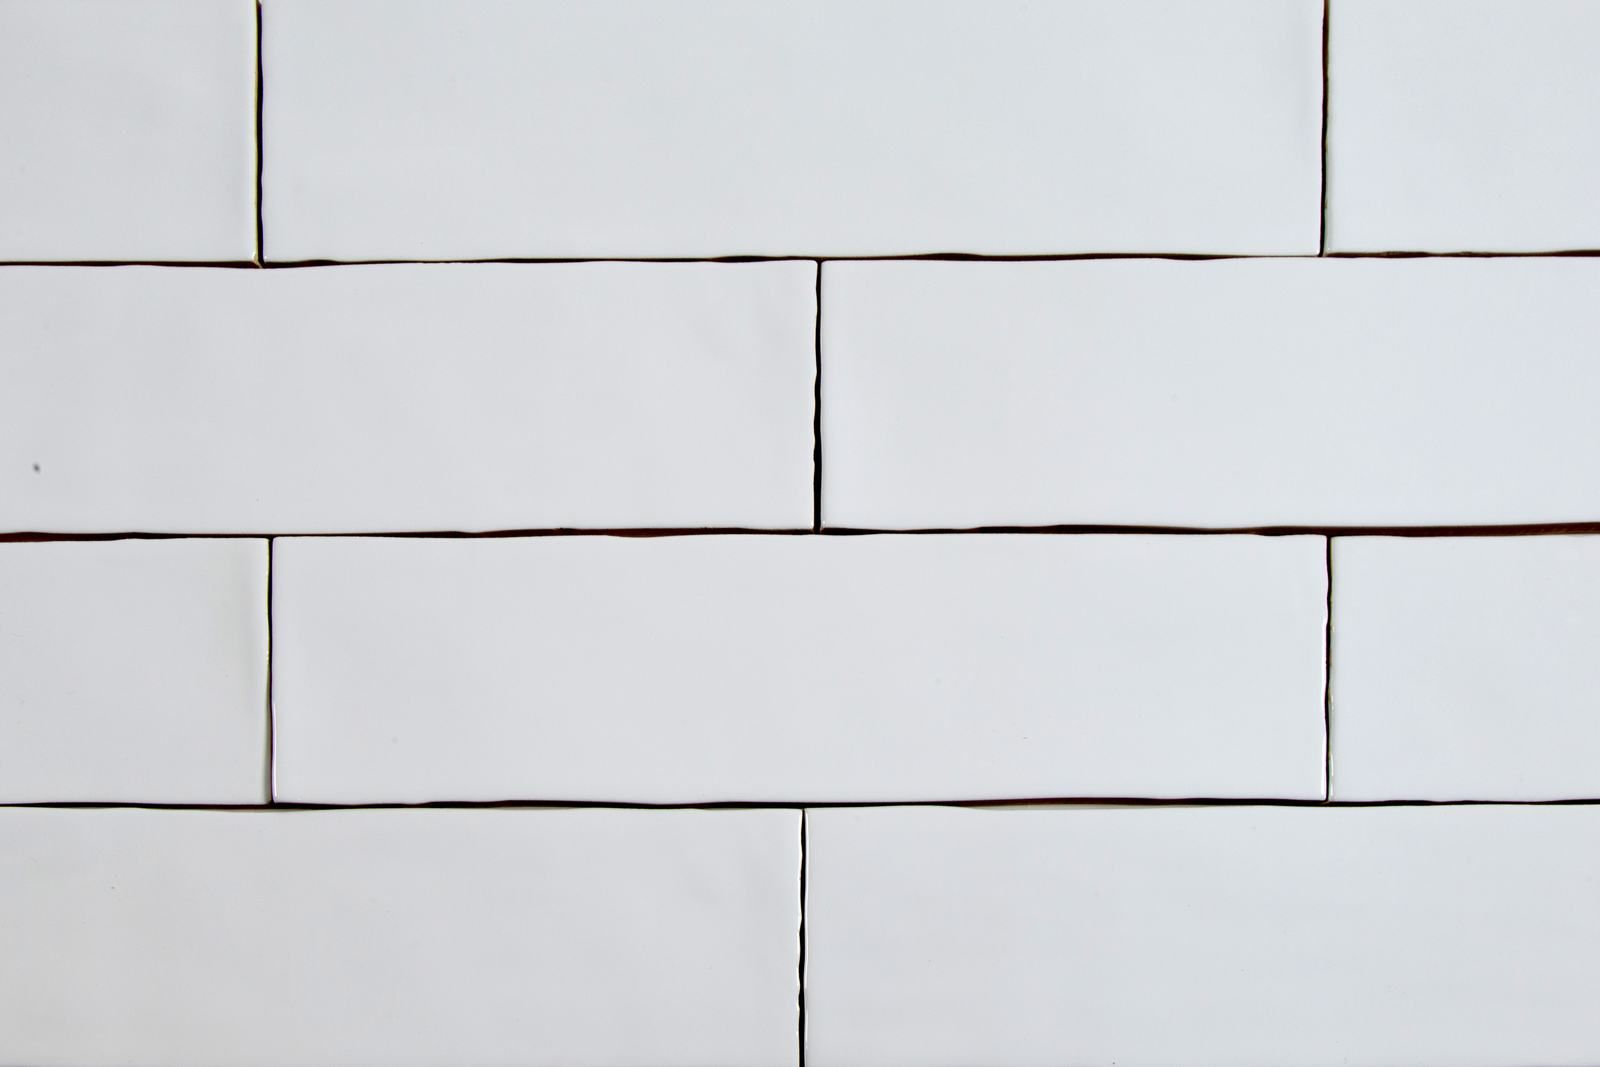 Lusso 3 X 12 Bianco Handmade Look Polished Subway Tile Subway Tile Ceramic Wall Tiles Tiles